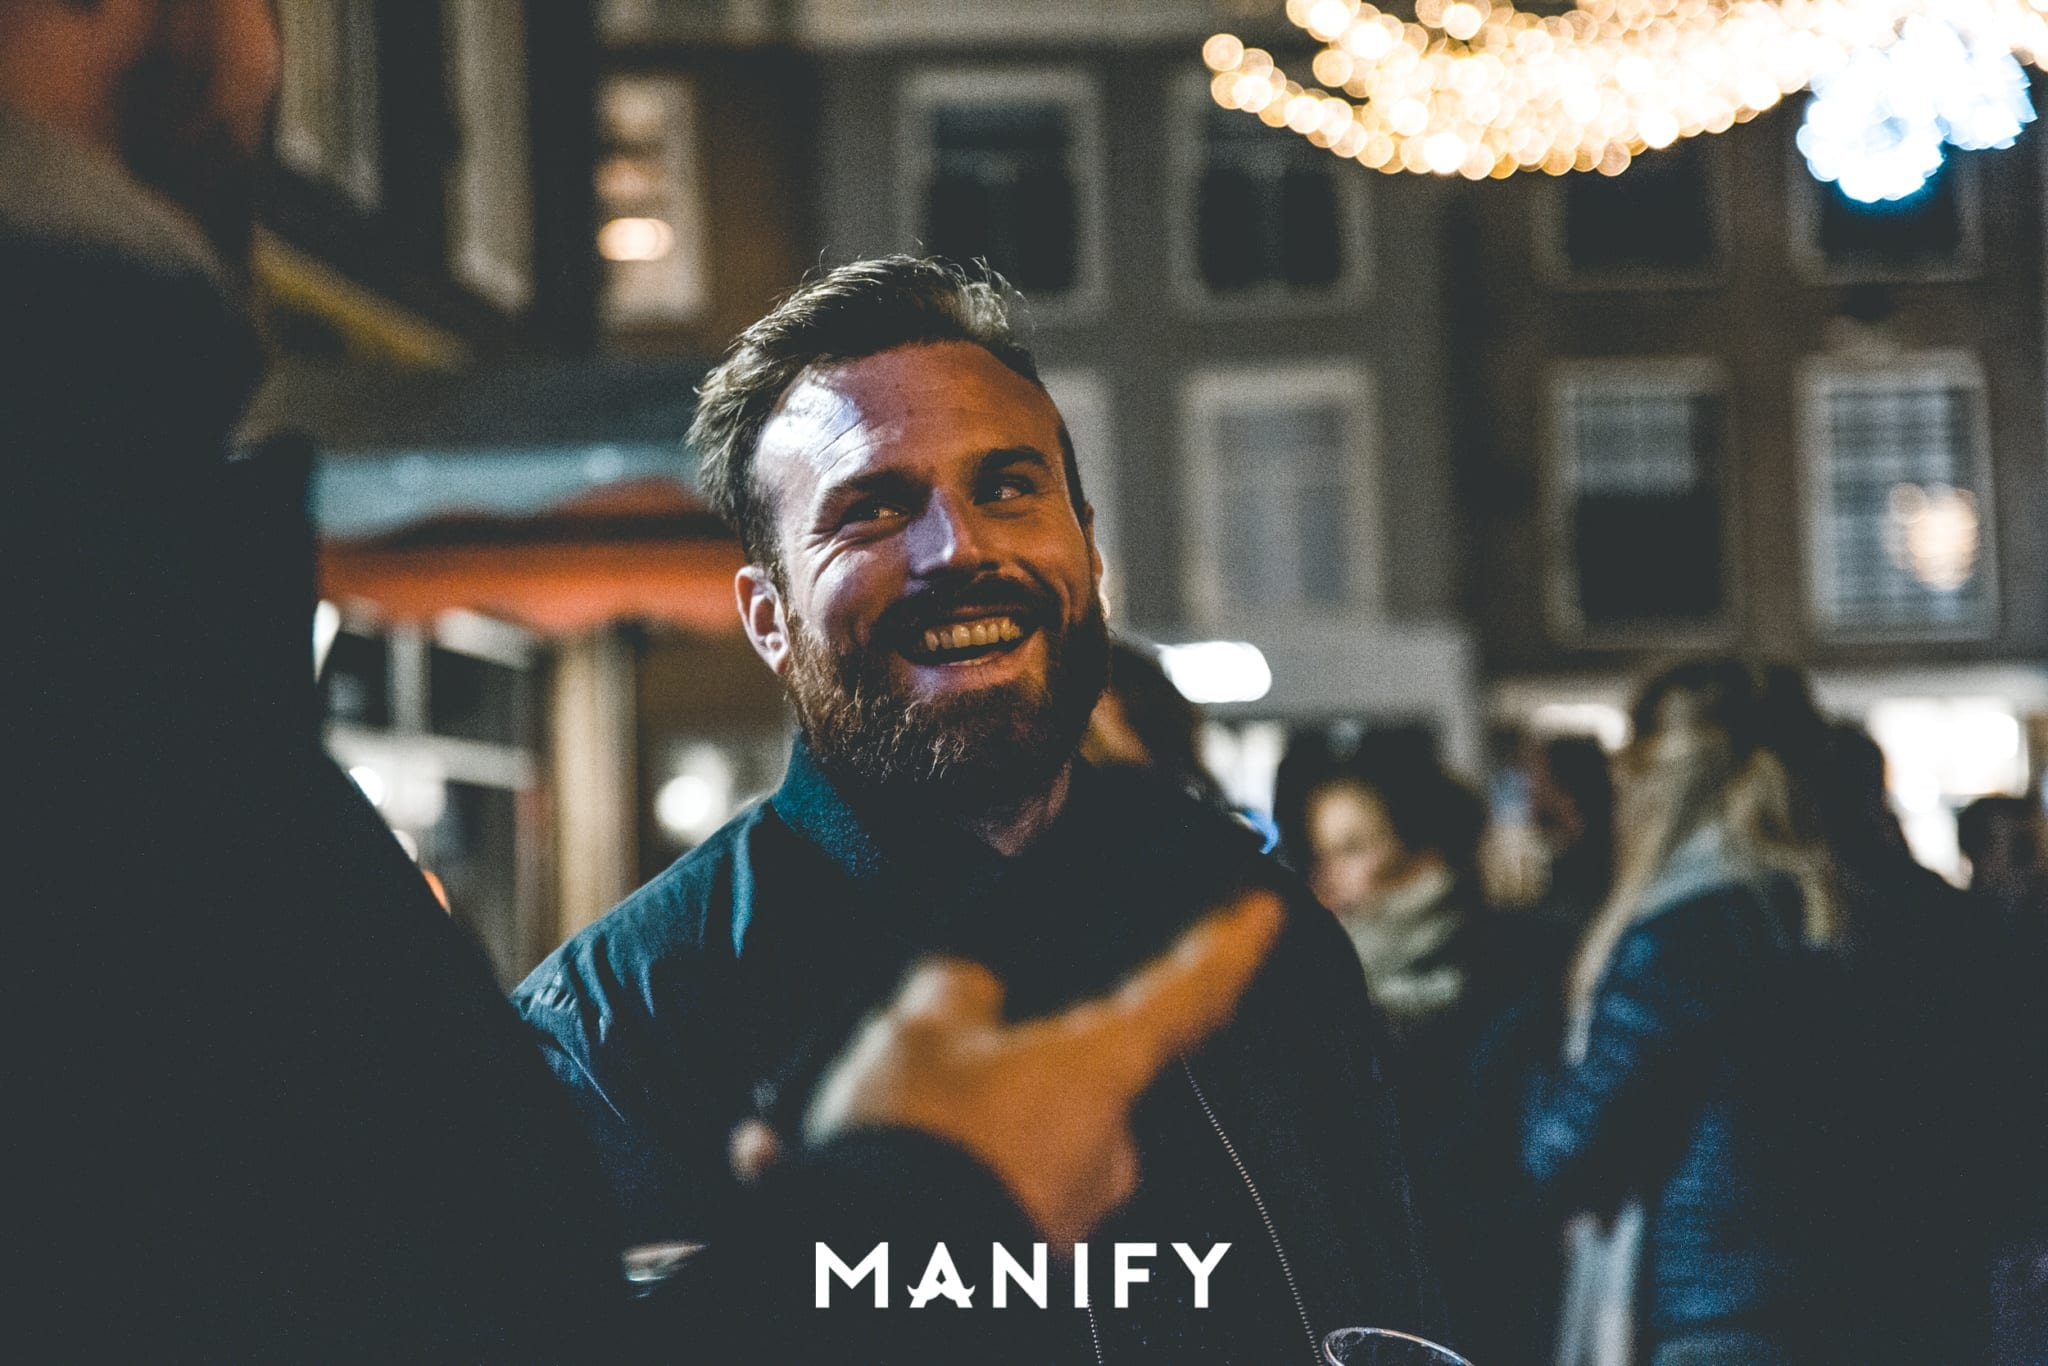 Manify_Out_of_office-E10_WM-26-manify